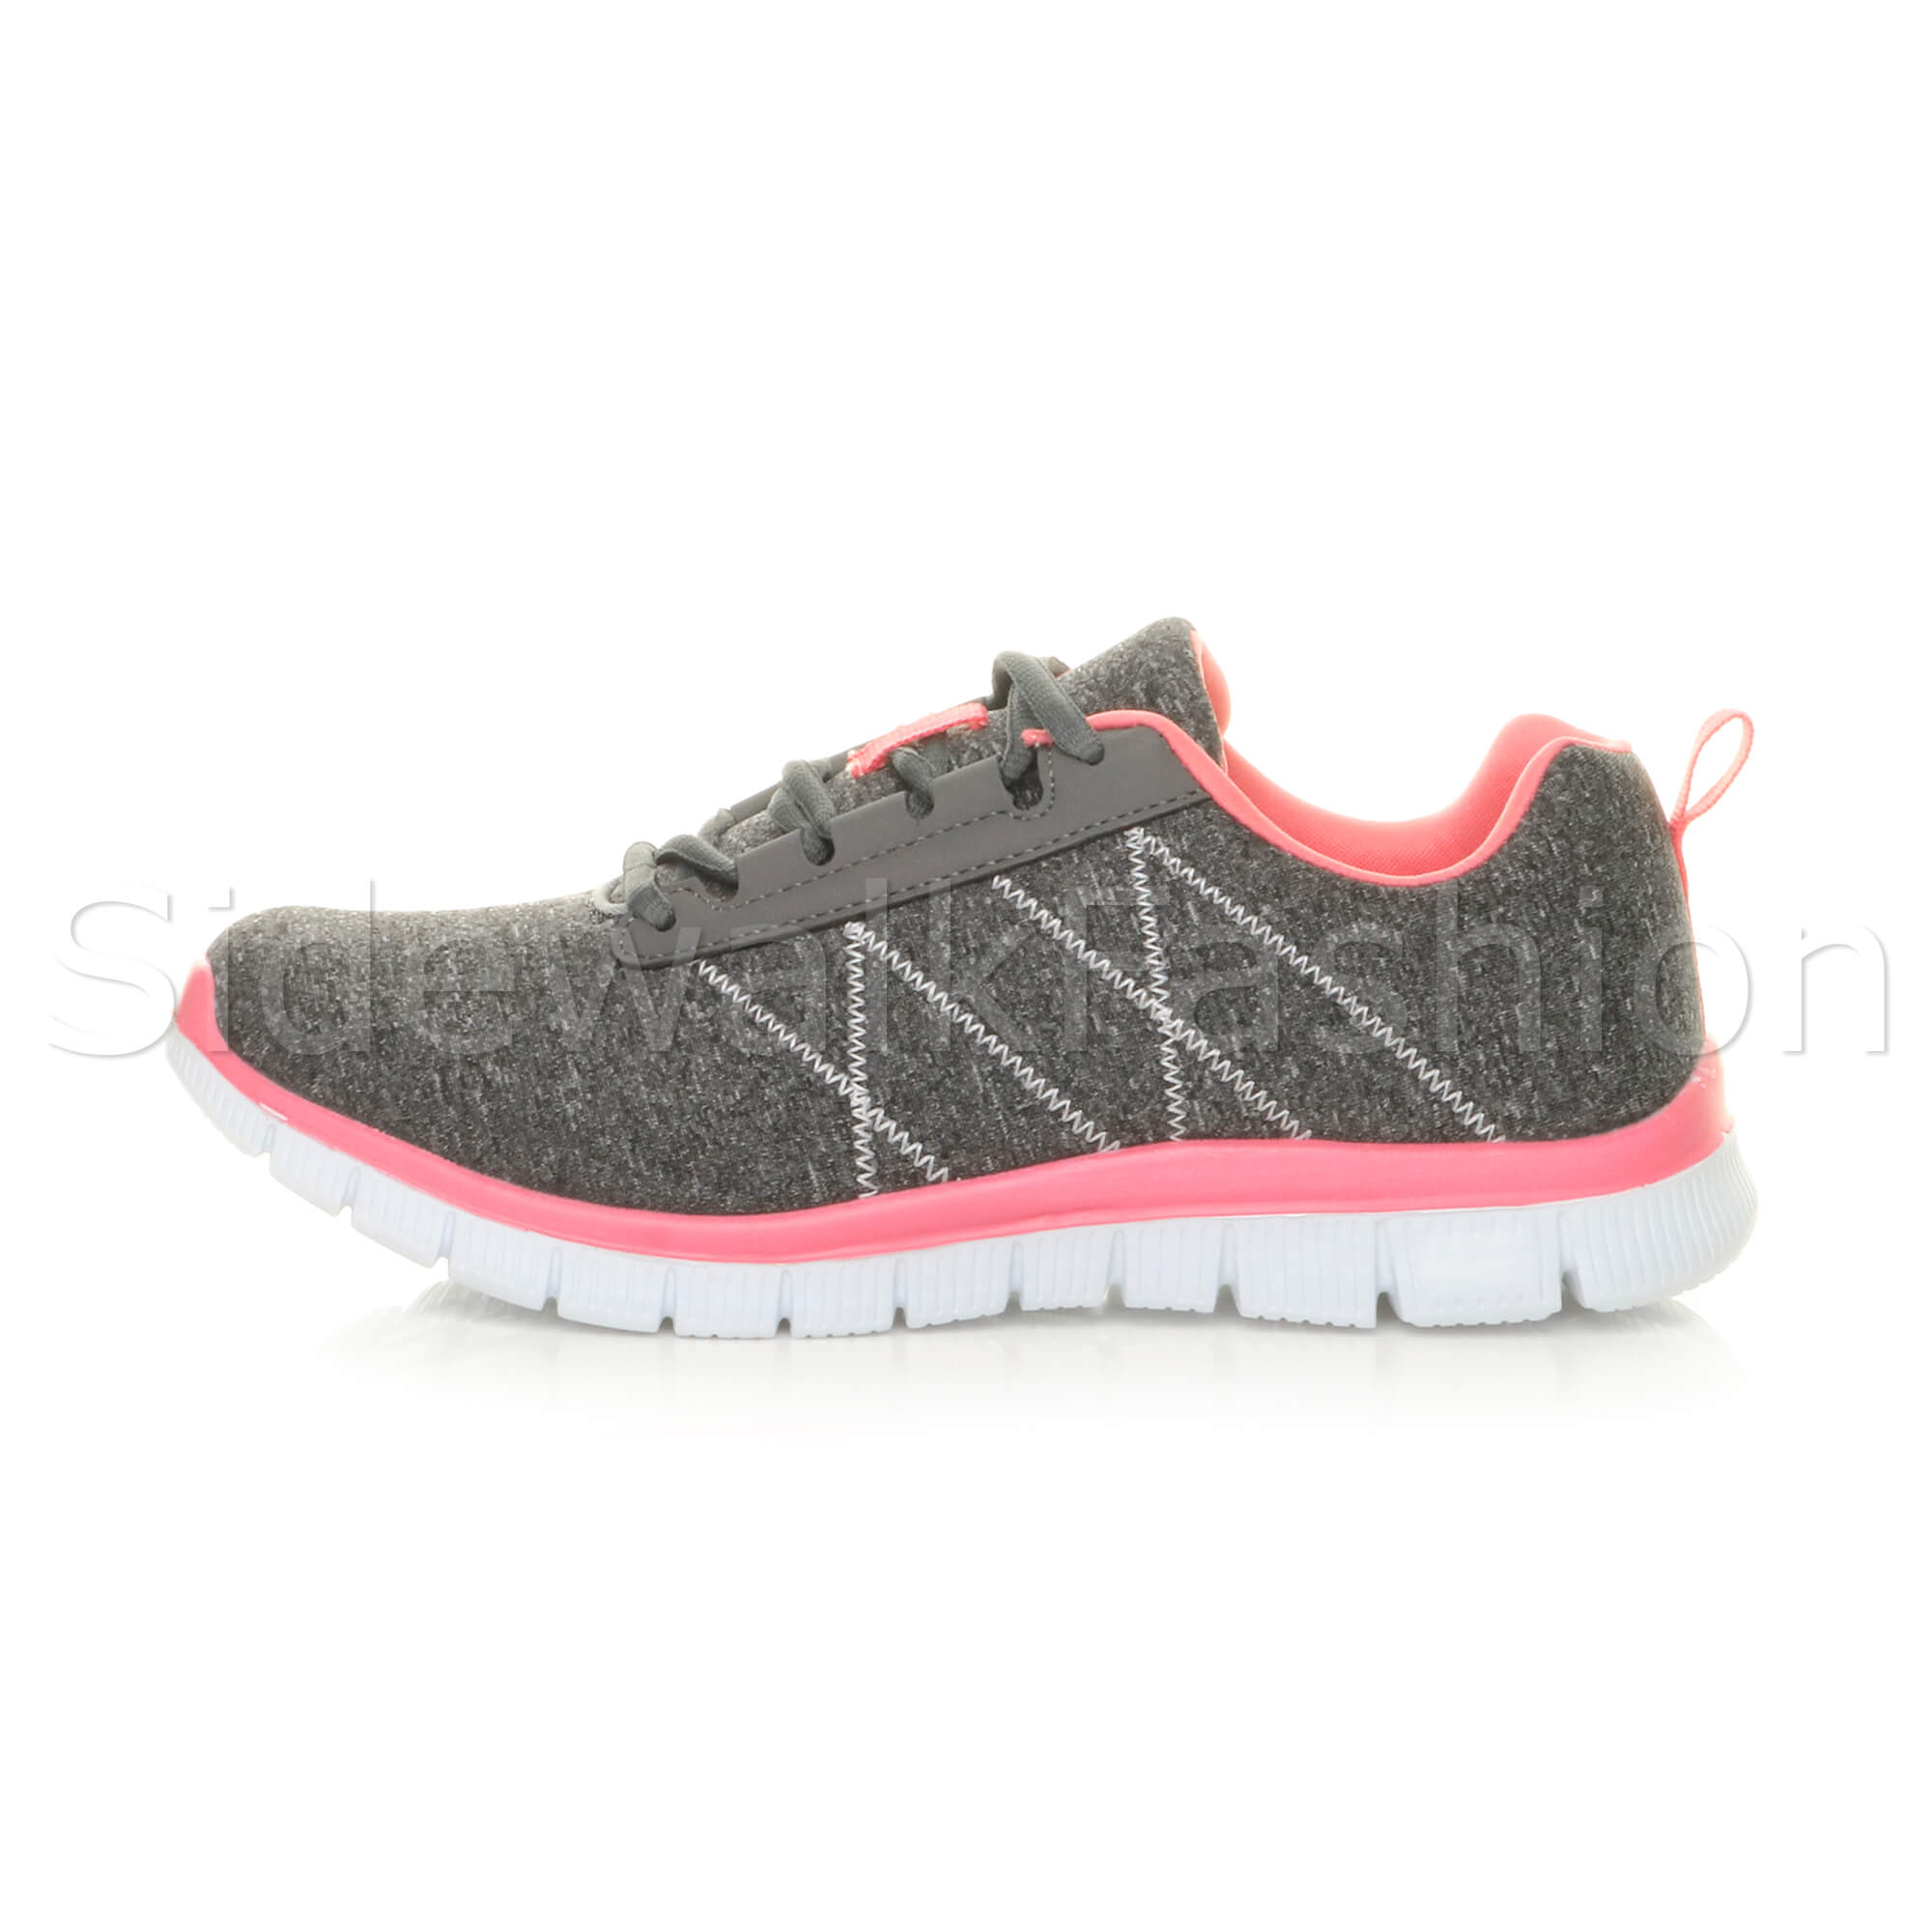 Womens-ladies-comfort-memory-foam-lace-up-trainers-activewear-sneakers-gym-shoes thumbnail 51